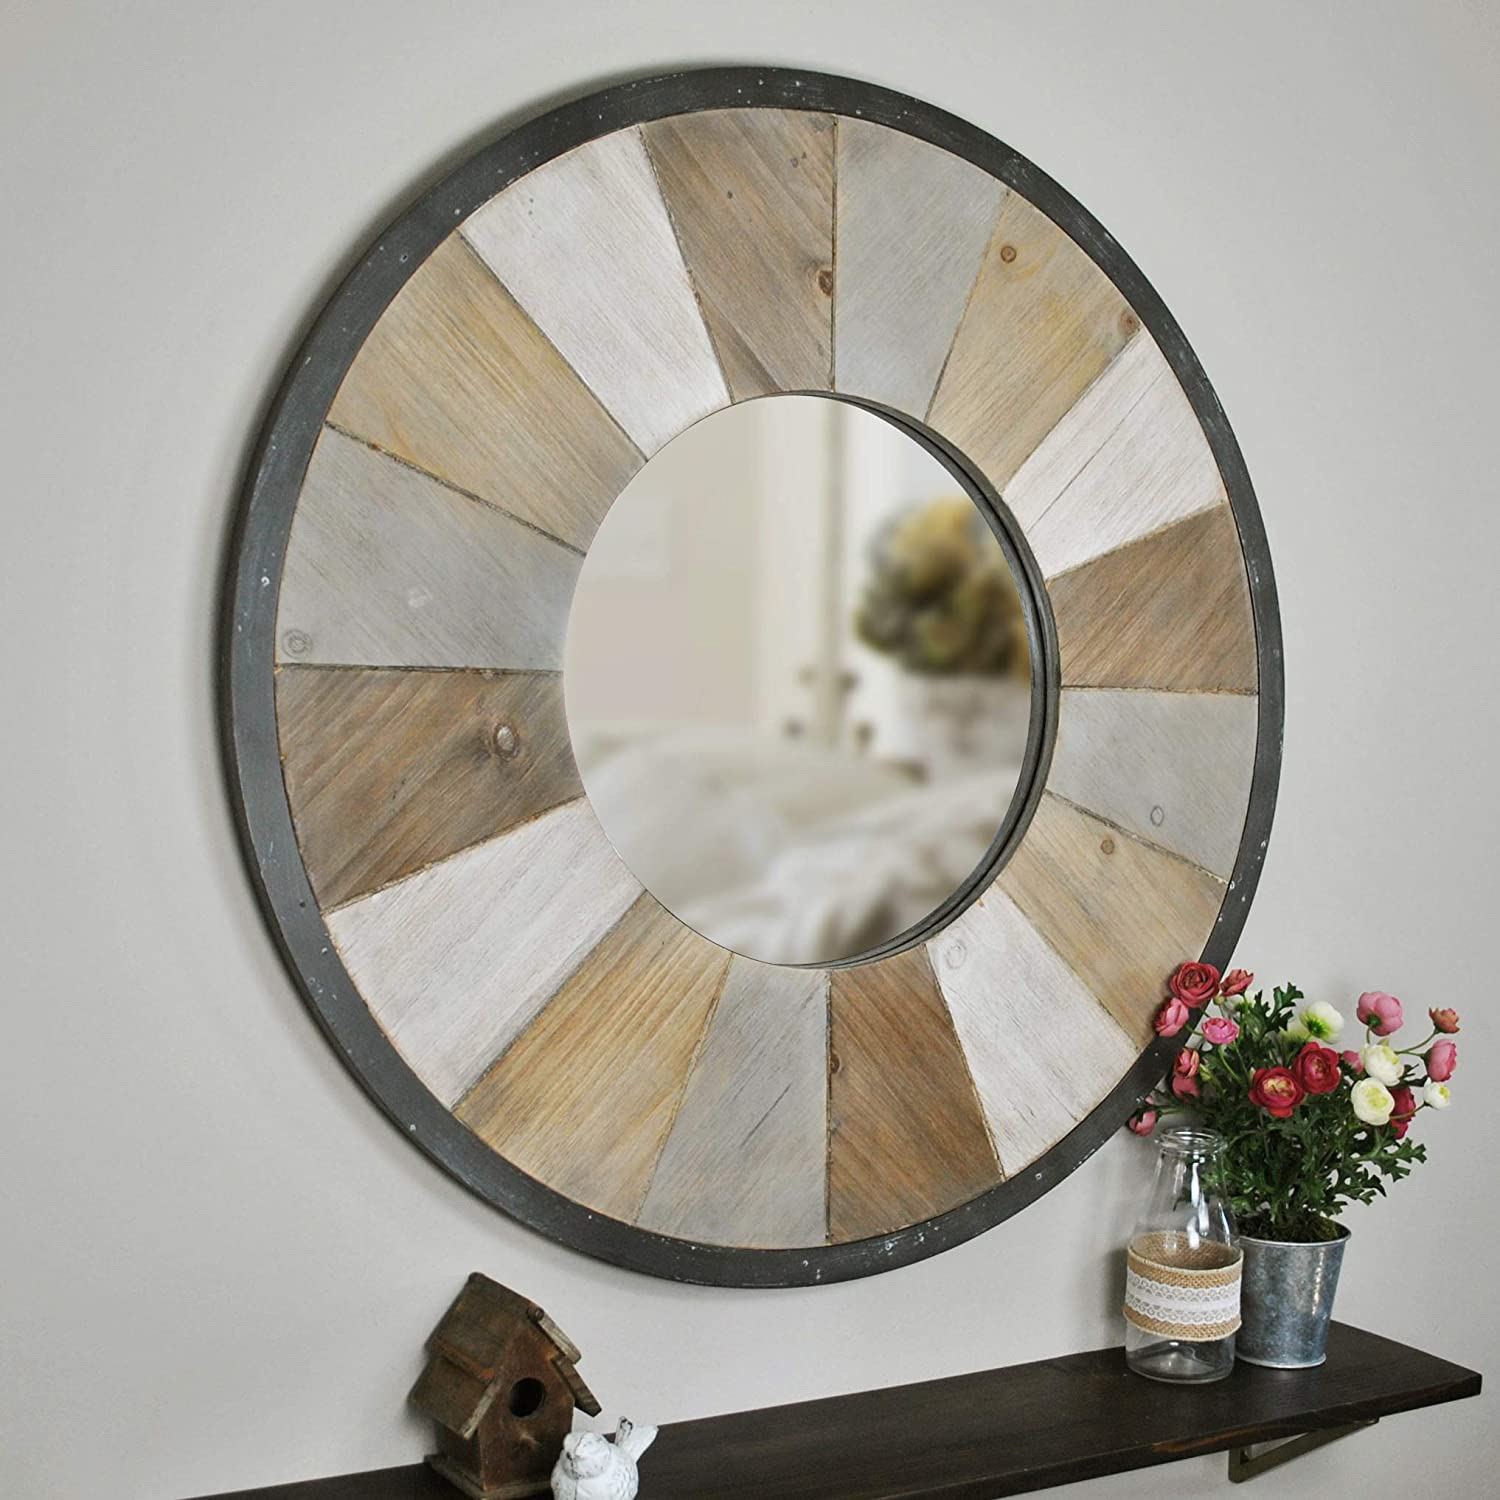 FirsTime & Co. Adler Rustic Wood Mirror, 31.5